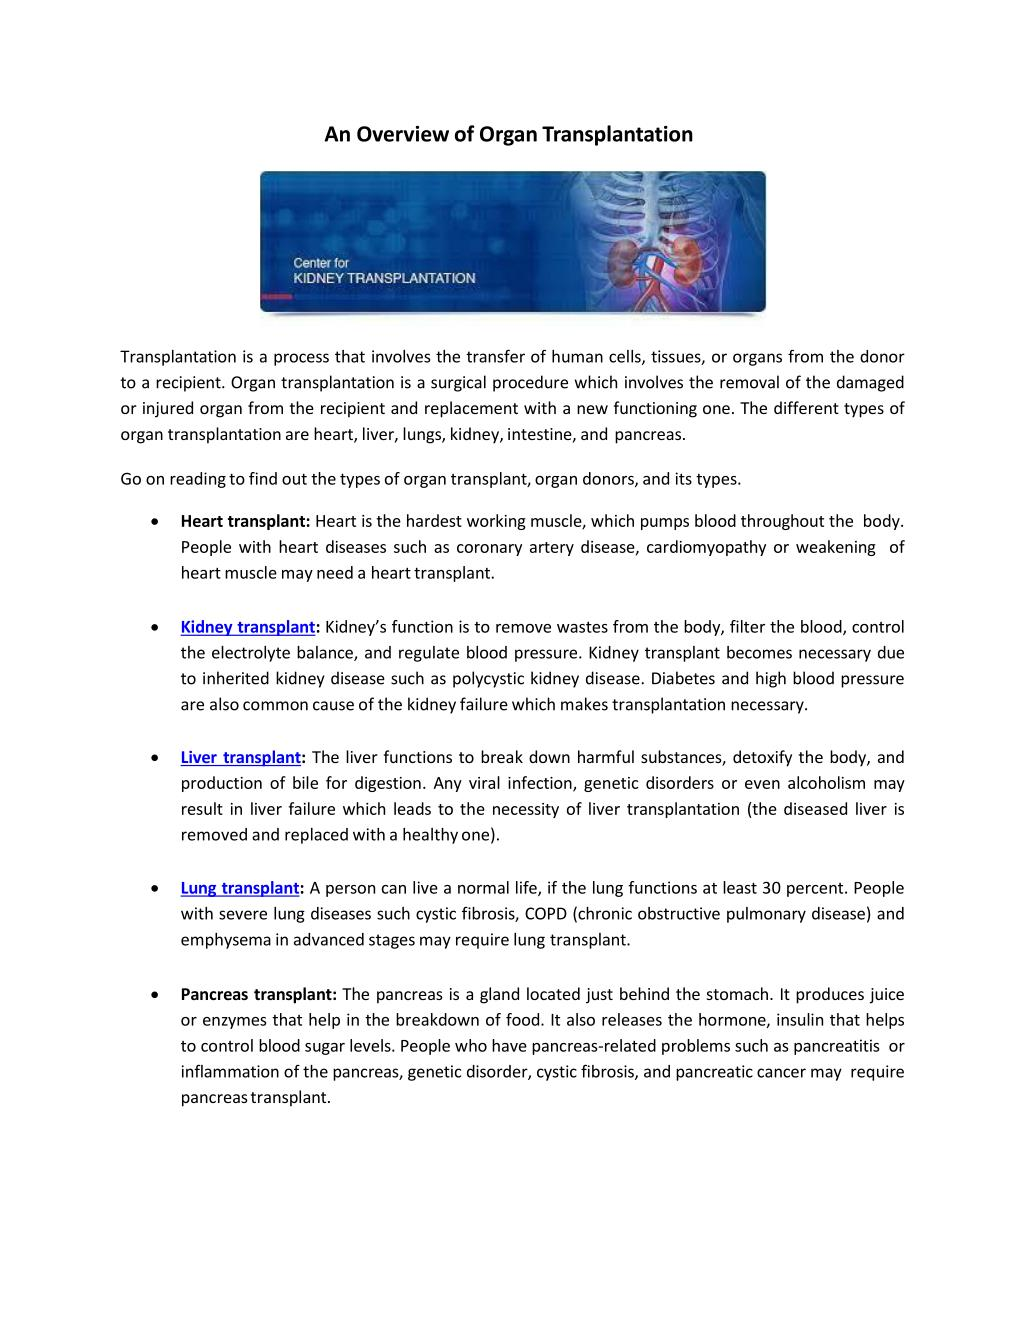 Ppt An Overview Of Organ Transplantation Powerpoint Presentation